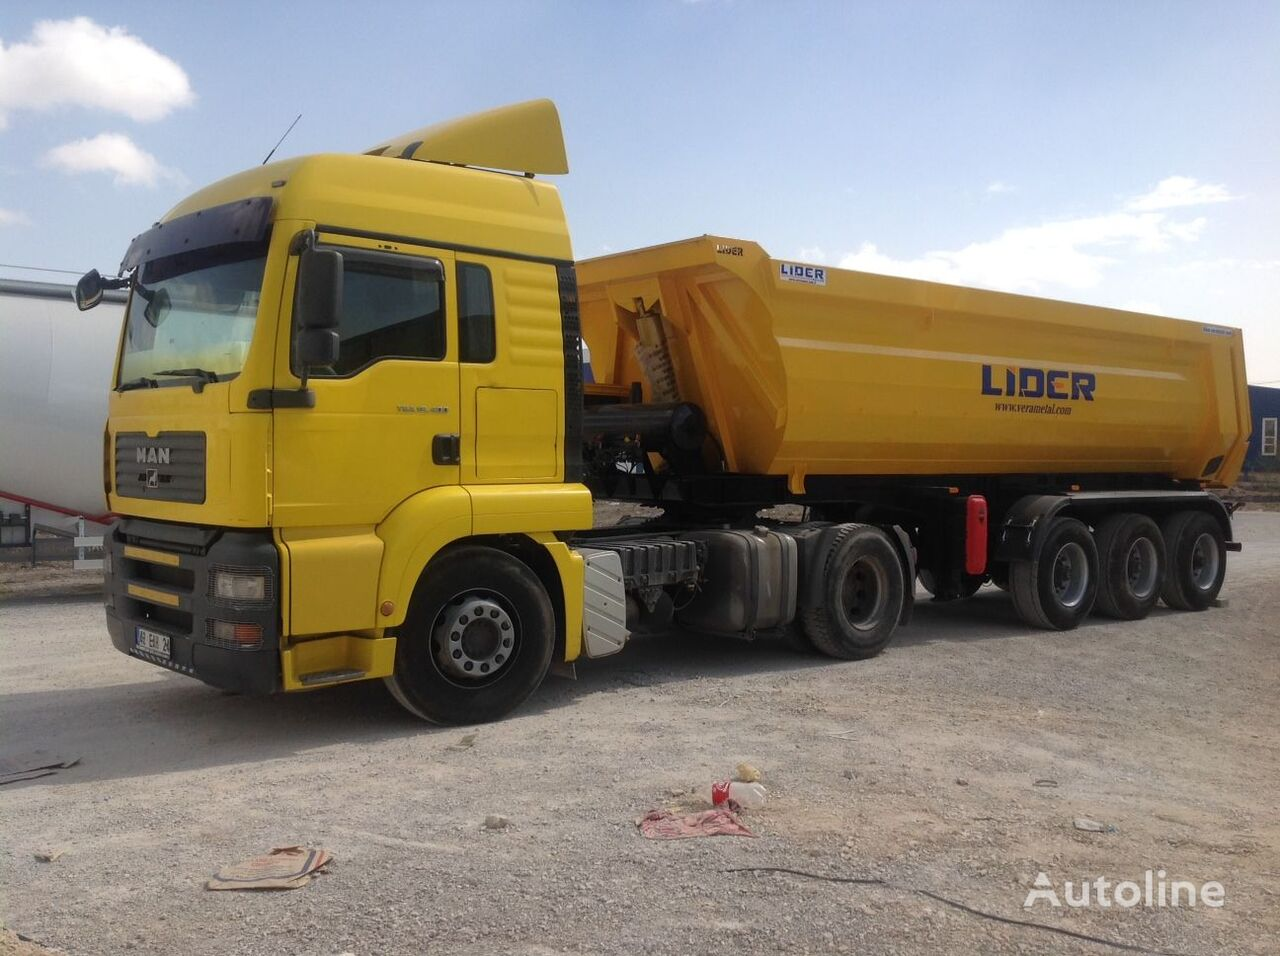 új LIDER 2019 NEW DIRECTLY FROM MANUFACTURER COMPANY AVAILABLE IN STOCK billenős félpótkocsi